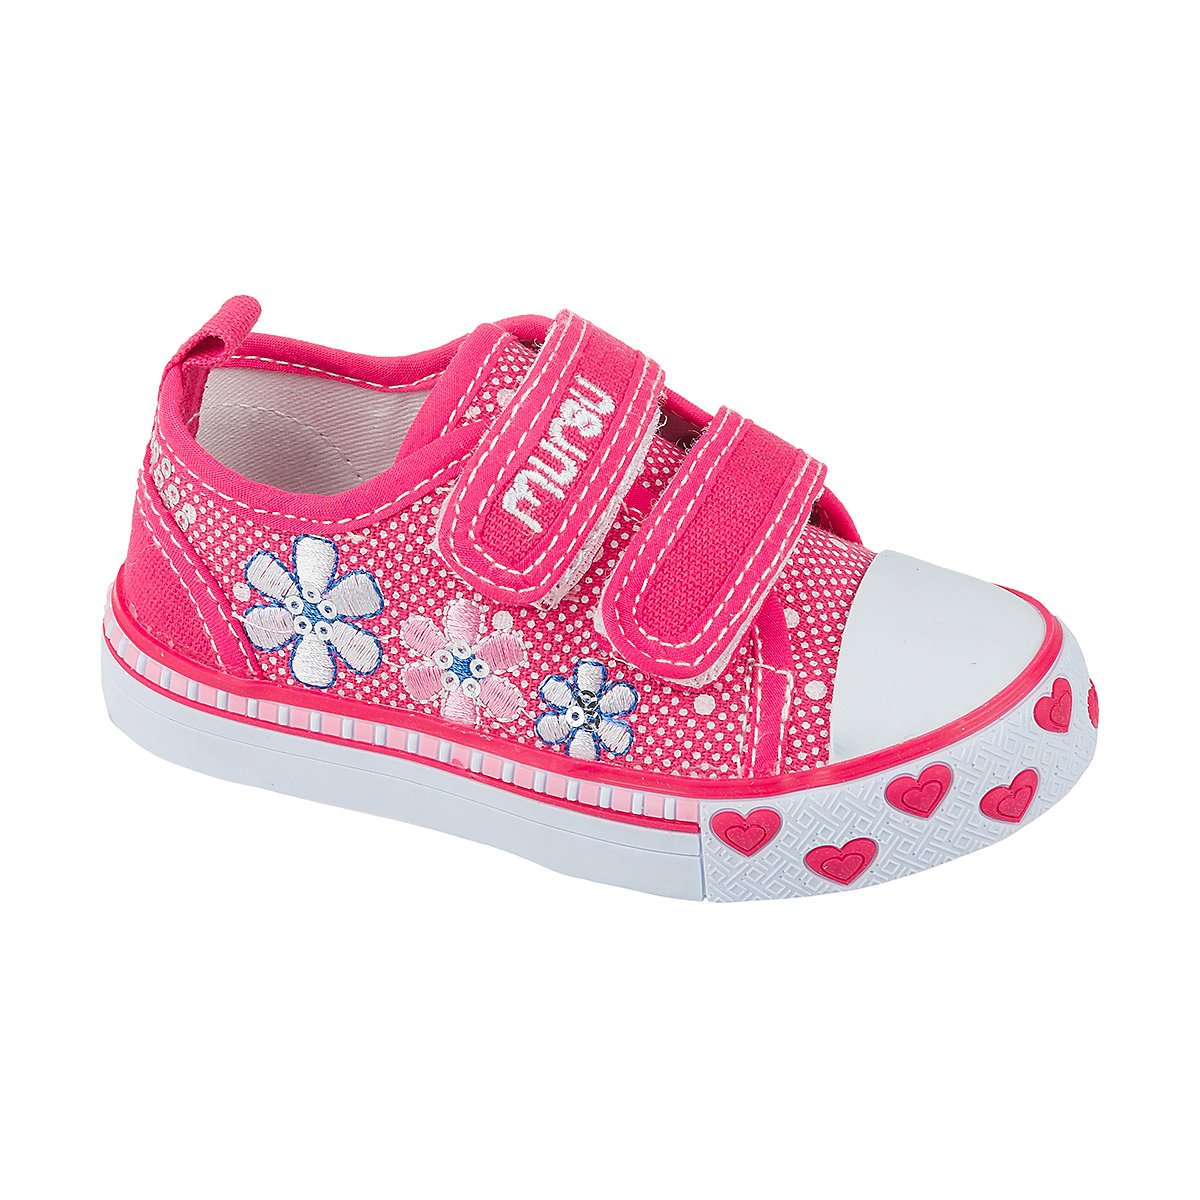 Фото - MURSU Children Casual Shoes 10611992 sneakers running shoes for children Pink sport Girls textile white female casual shoes canvas shoes